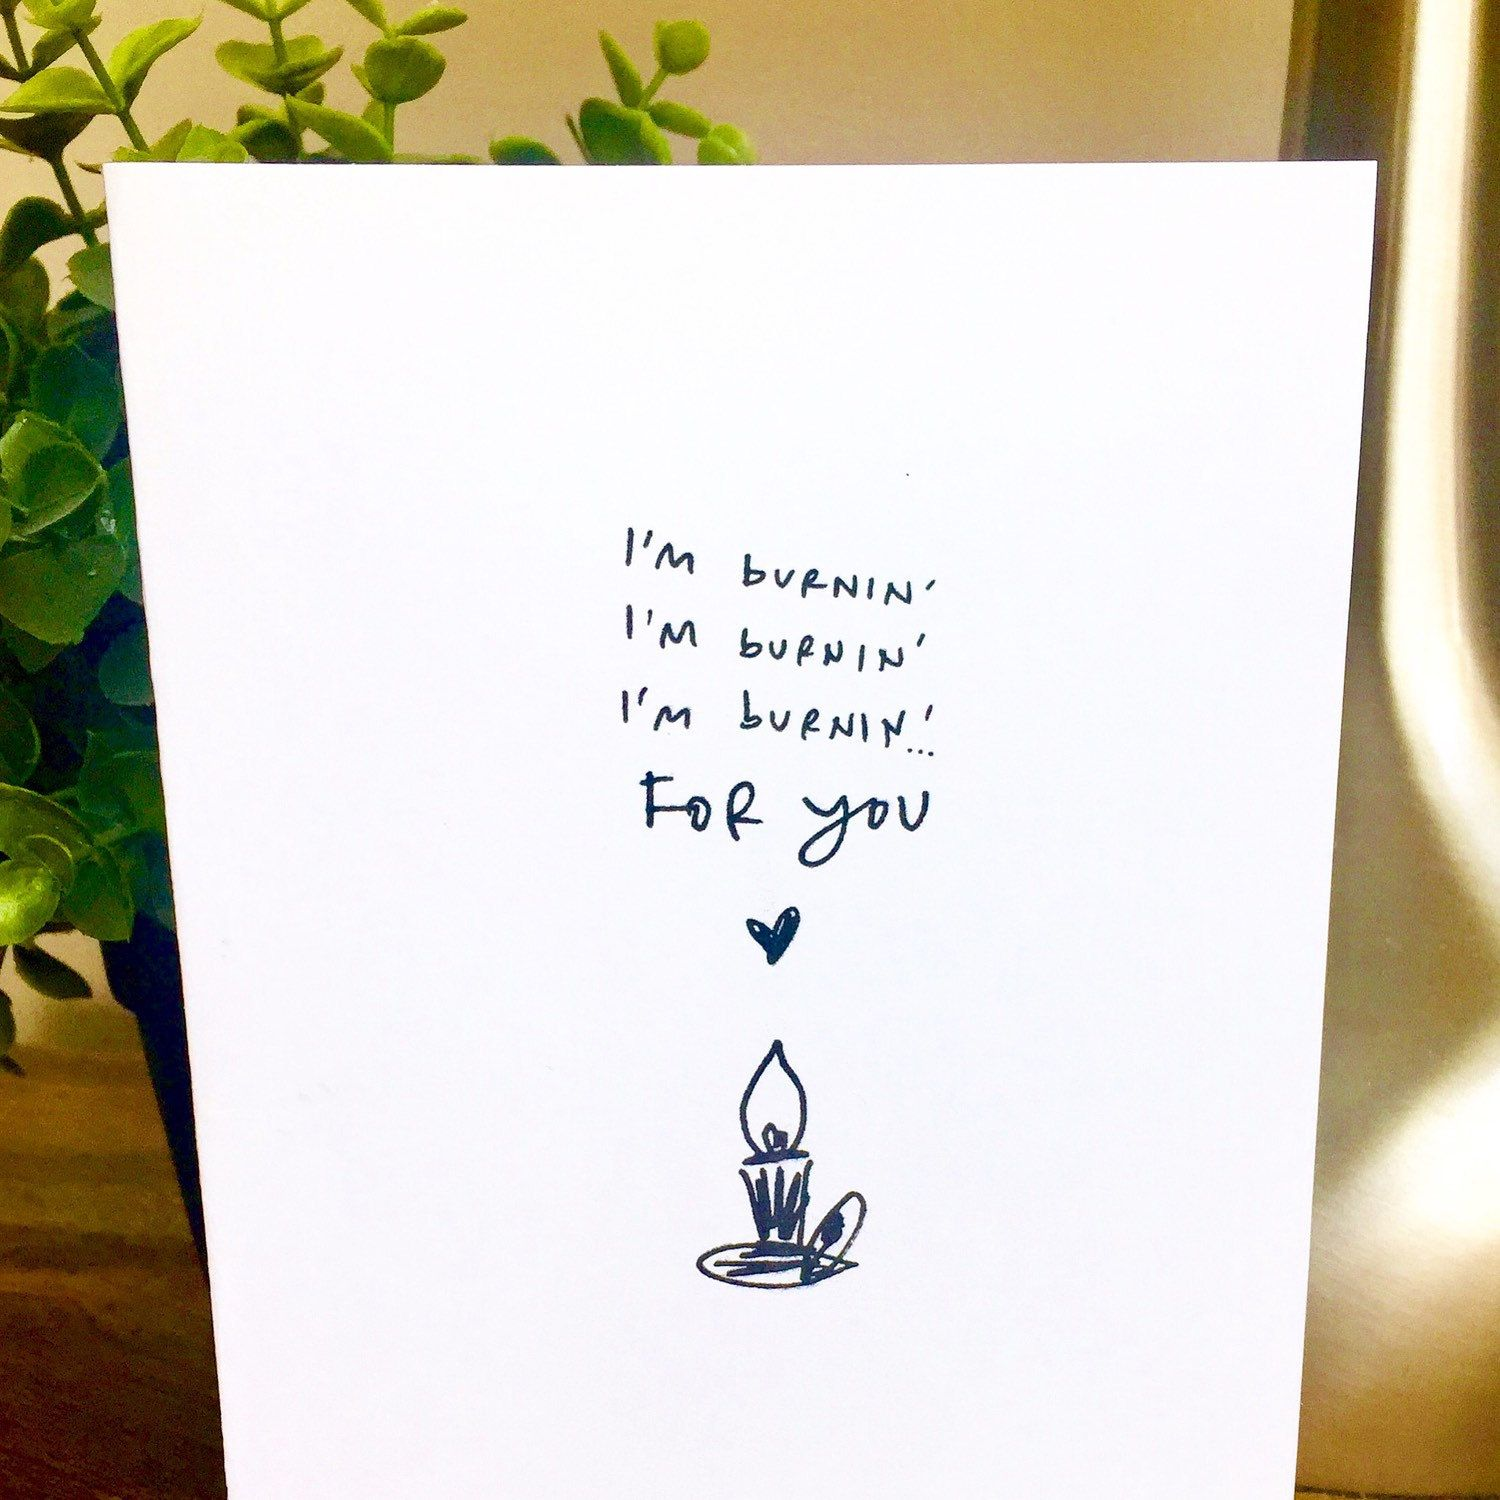 Ium burning for you card one year anniversary card for husband